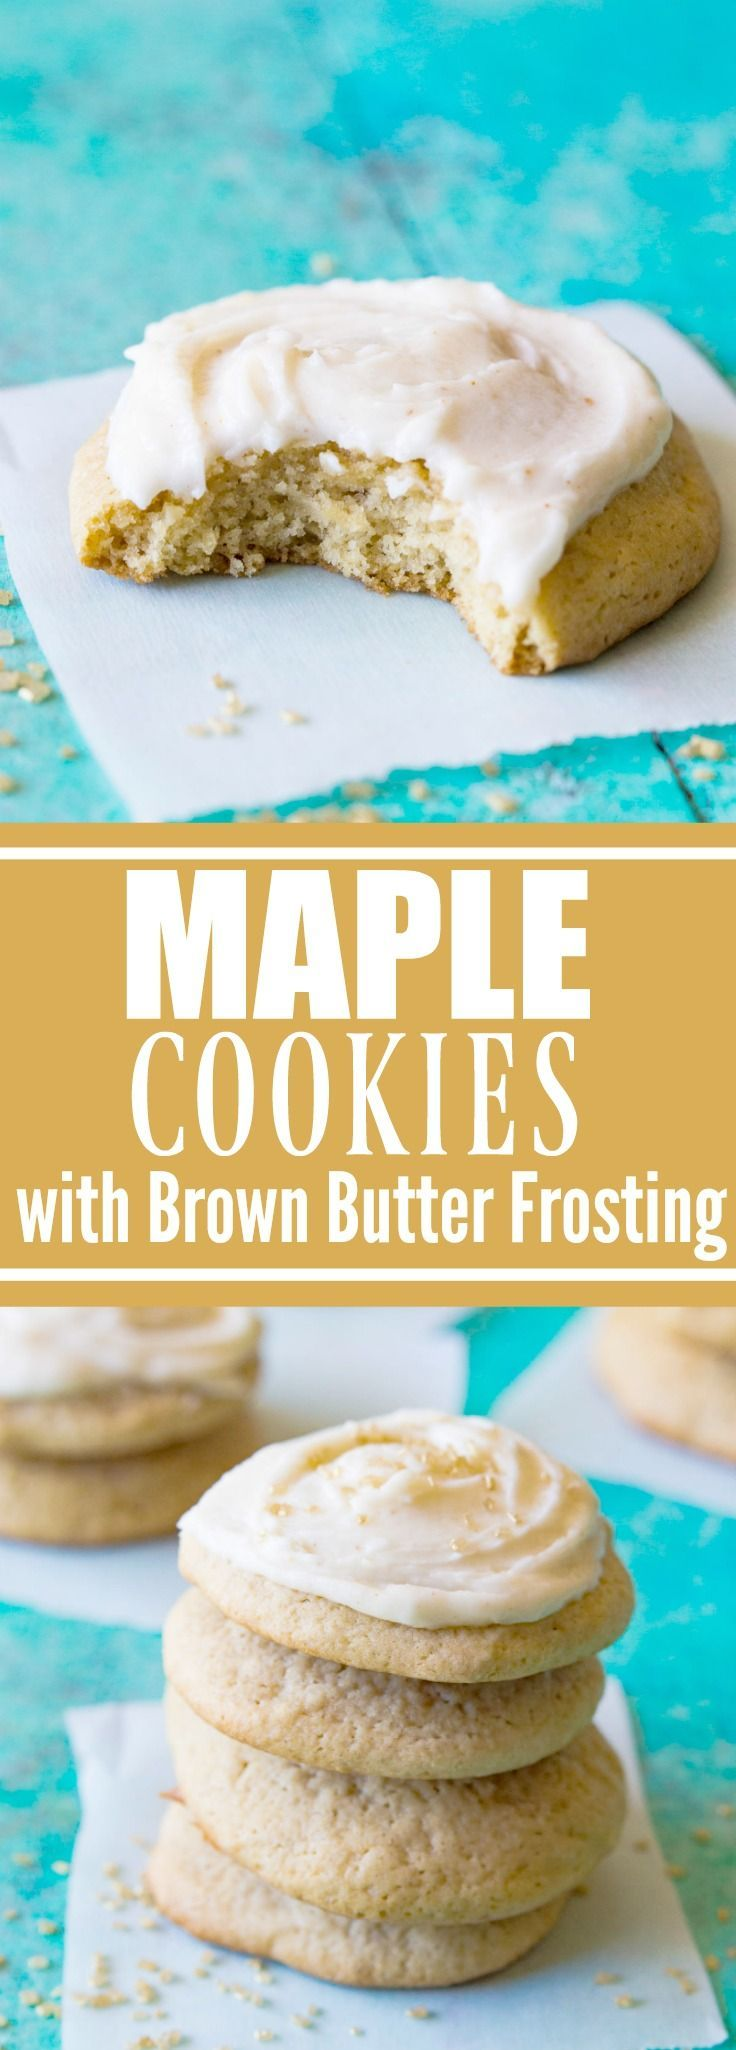 Maple Cookies with Brown Butter Frosting. These ultra soft bakery style cookies are made with real maple syrup and topped with a swirl of BROWN BUTTER frosting!